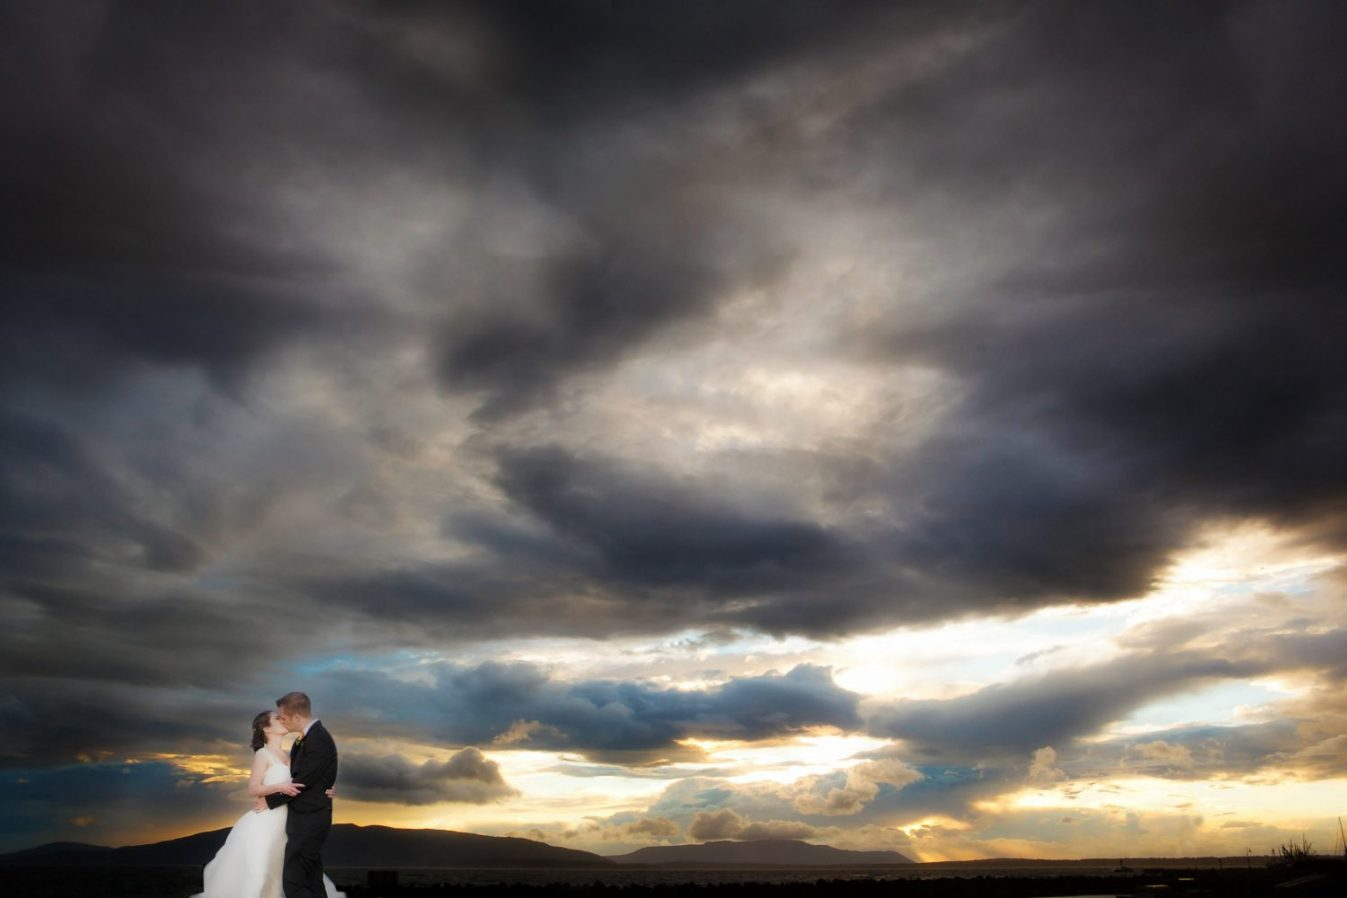 bellingham-sunset-with-bride-groom-bellwether-hotel-wedding-photo